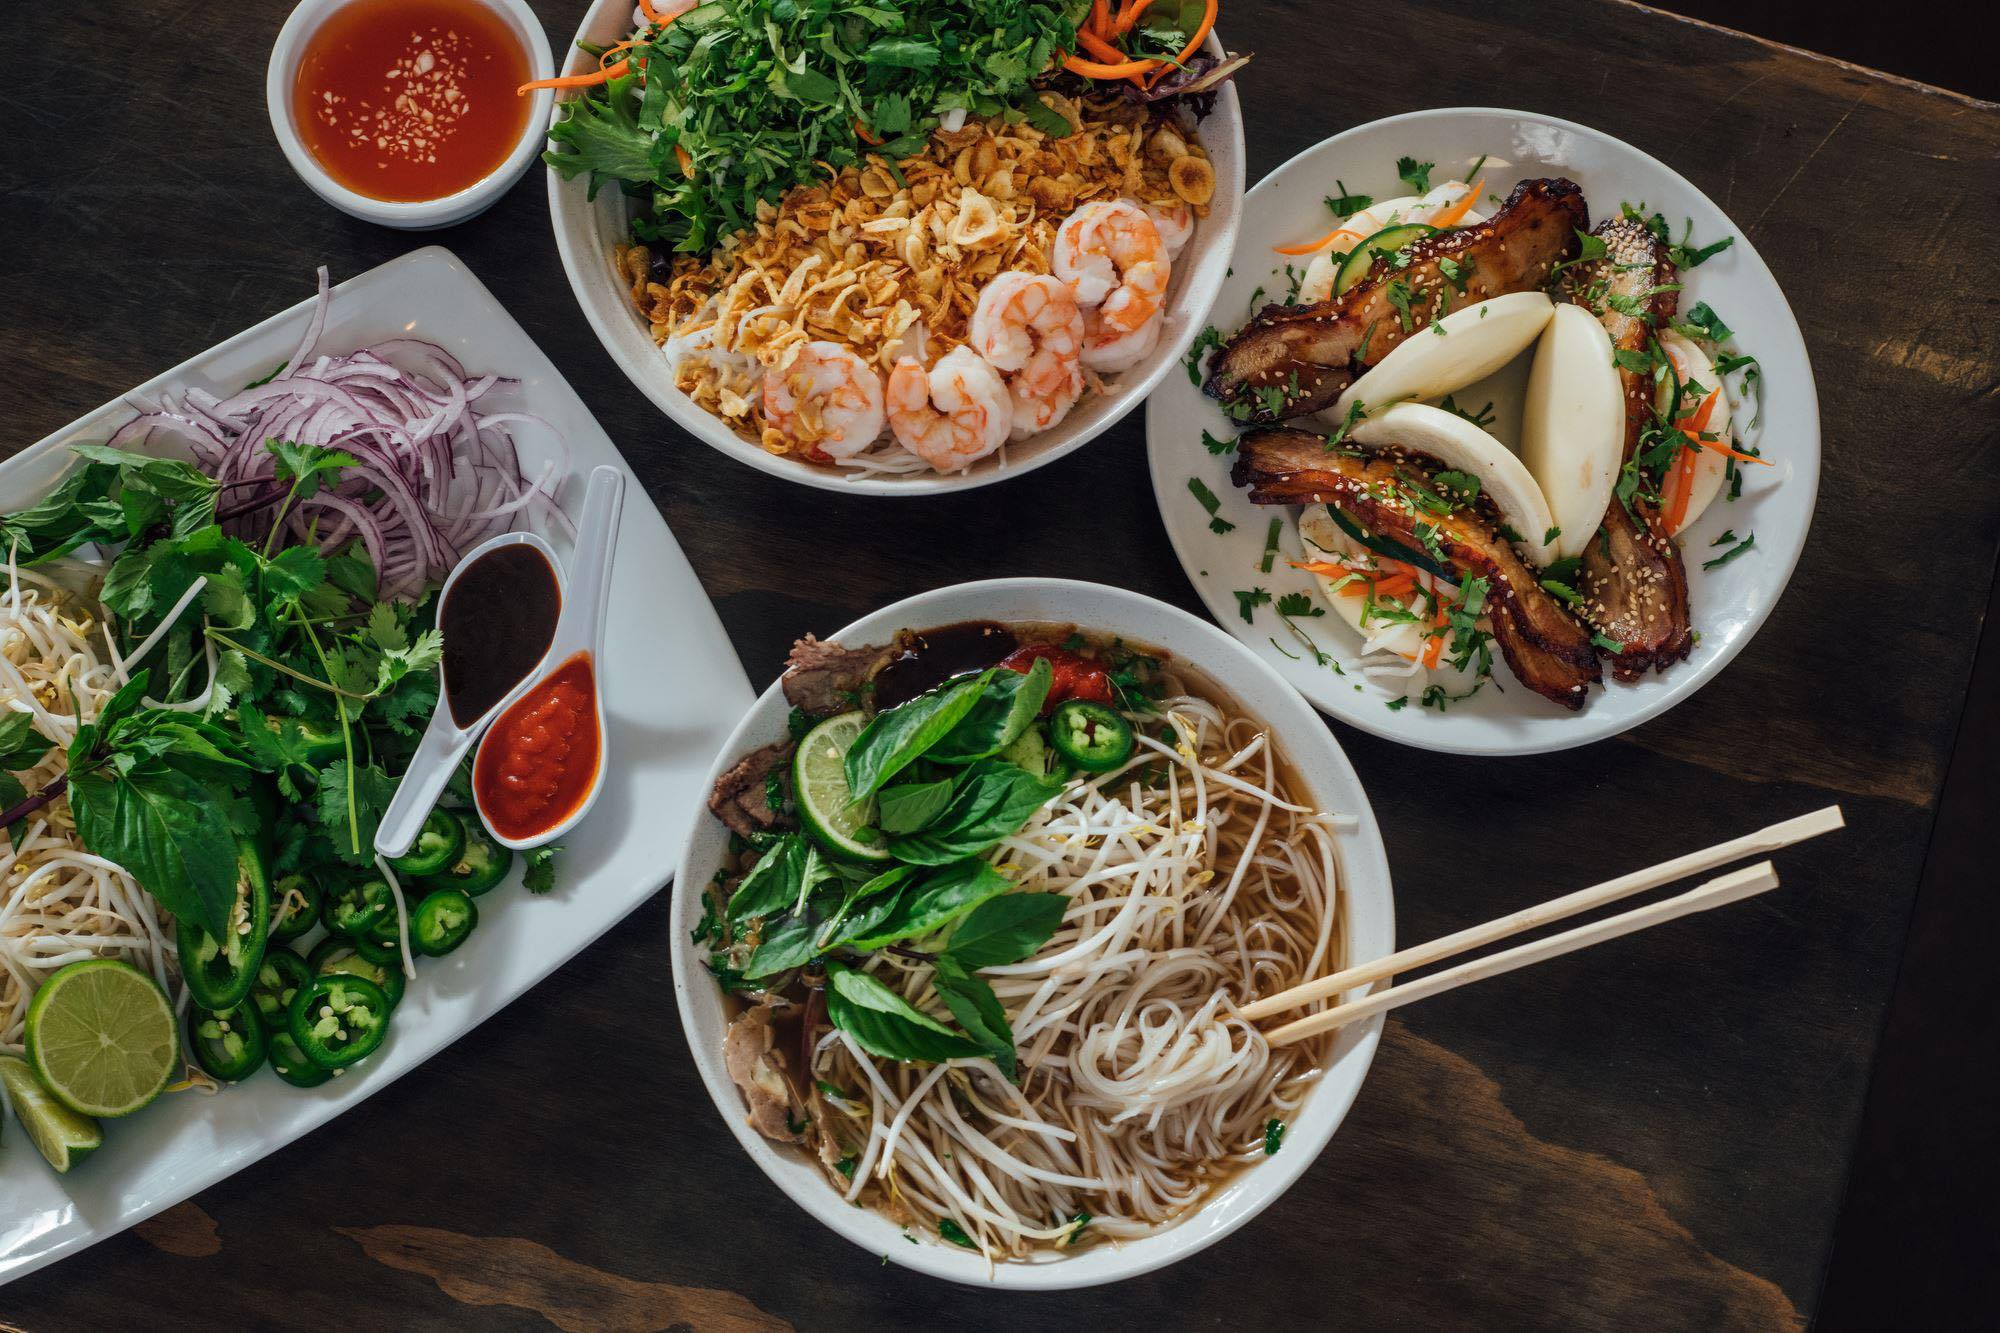 A bowl of pho, a plate of red onion, jalapeno, cilantro, and bean sprouts, a plate of pork belly steamed buns, and a bowl of vermicelli noodles topped with shrimp.